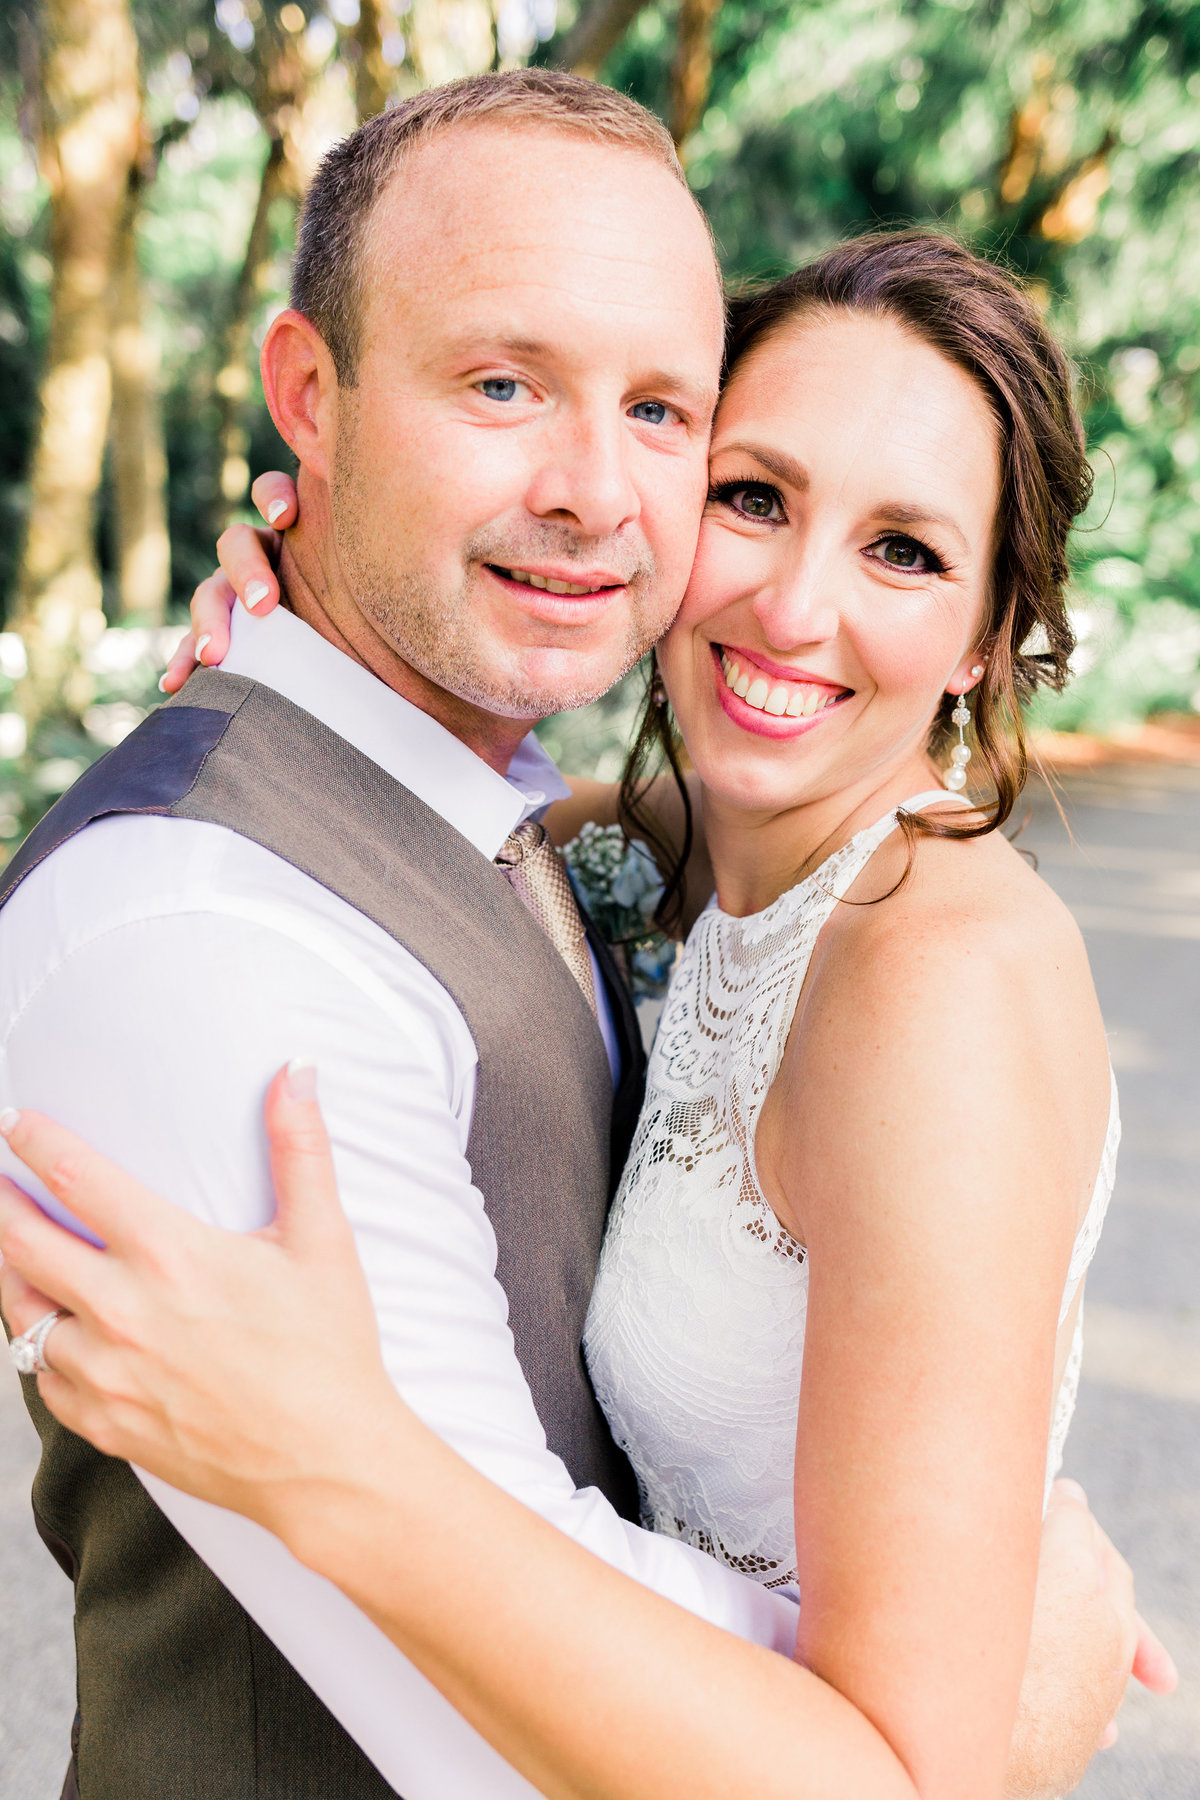 kimberly-hoyle-photography-kelly-david-grant-florida-wedding-74